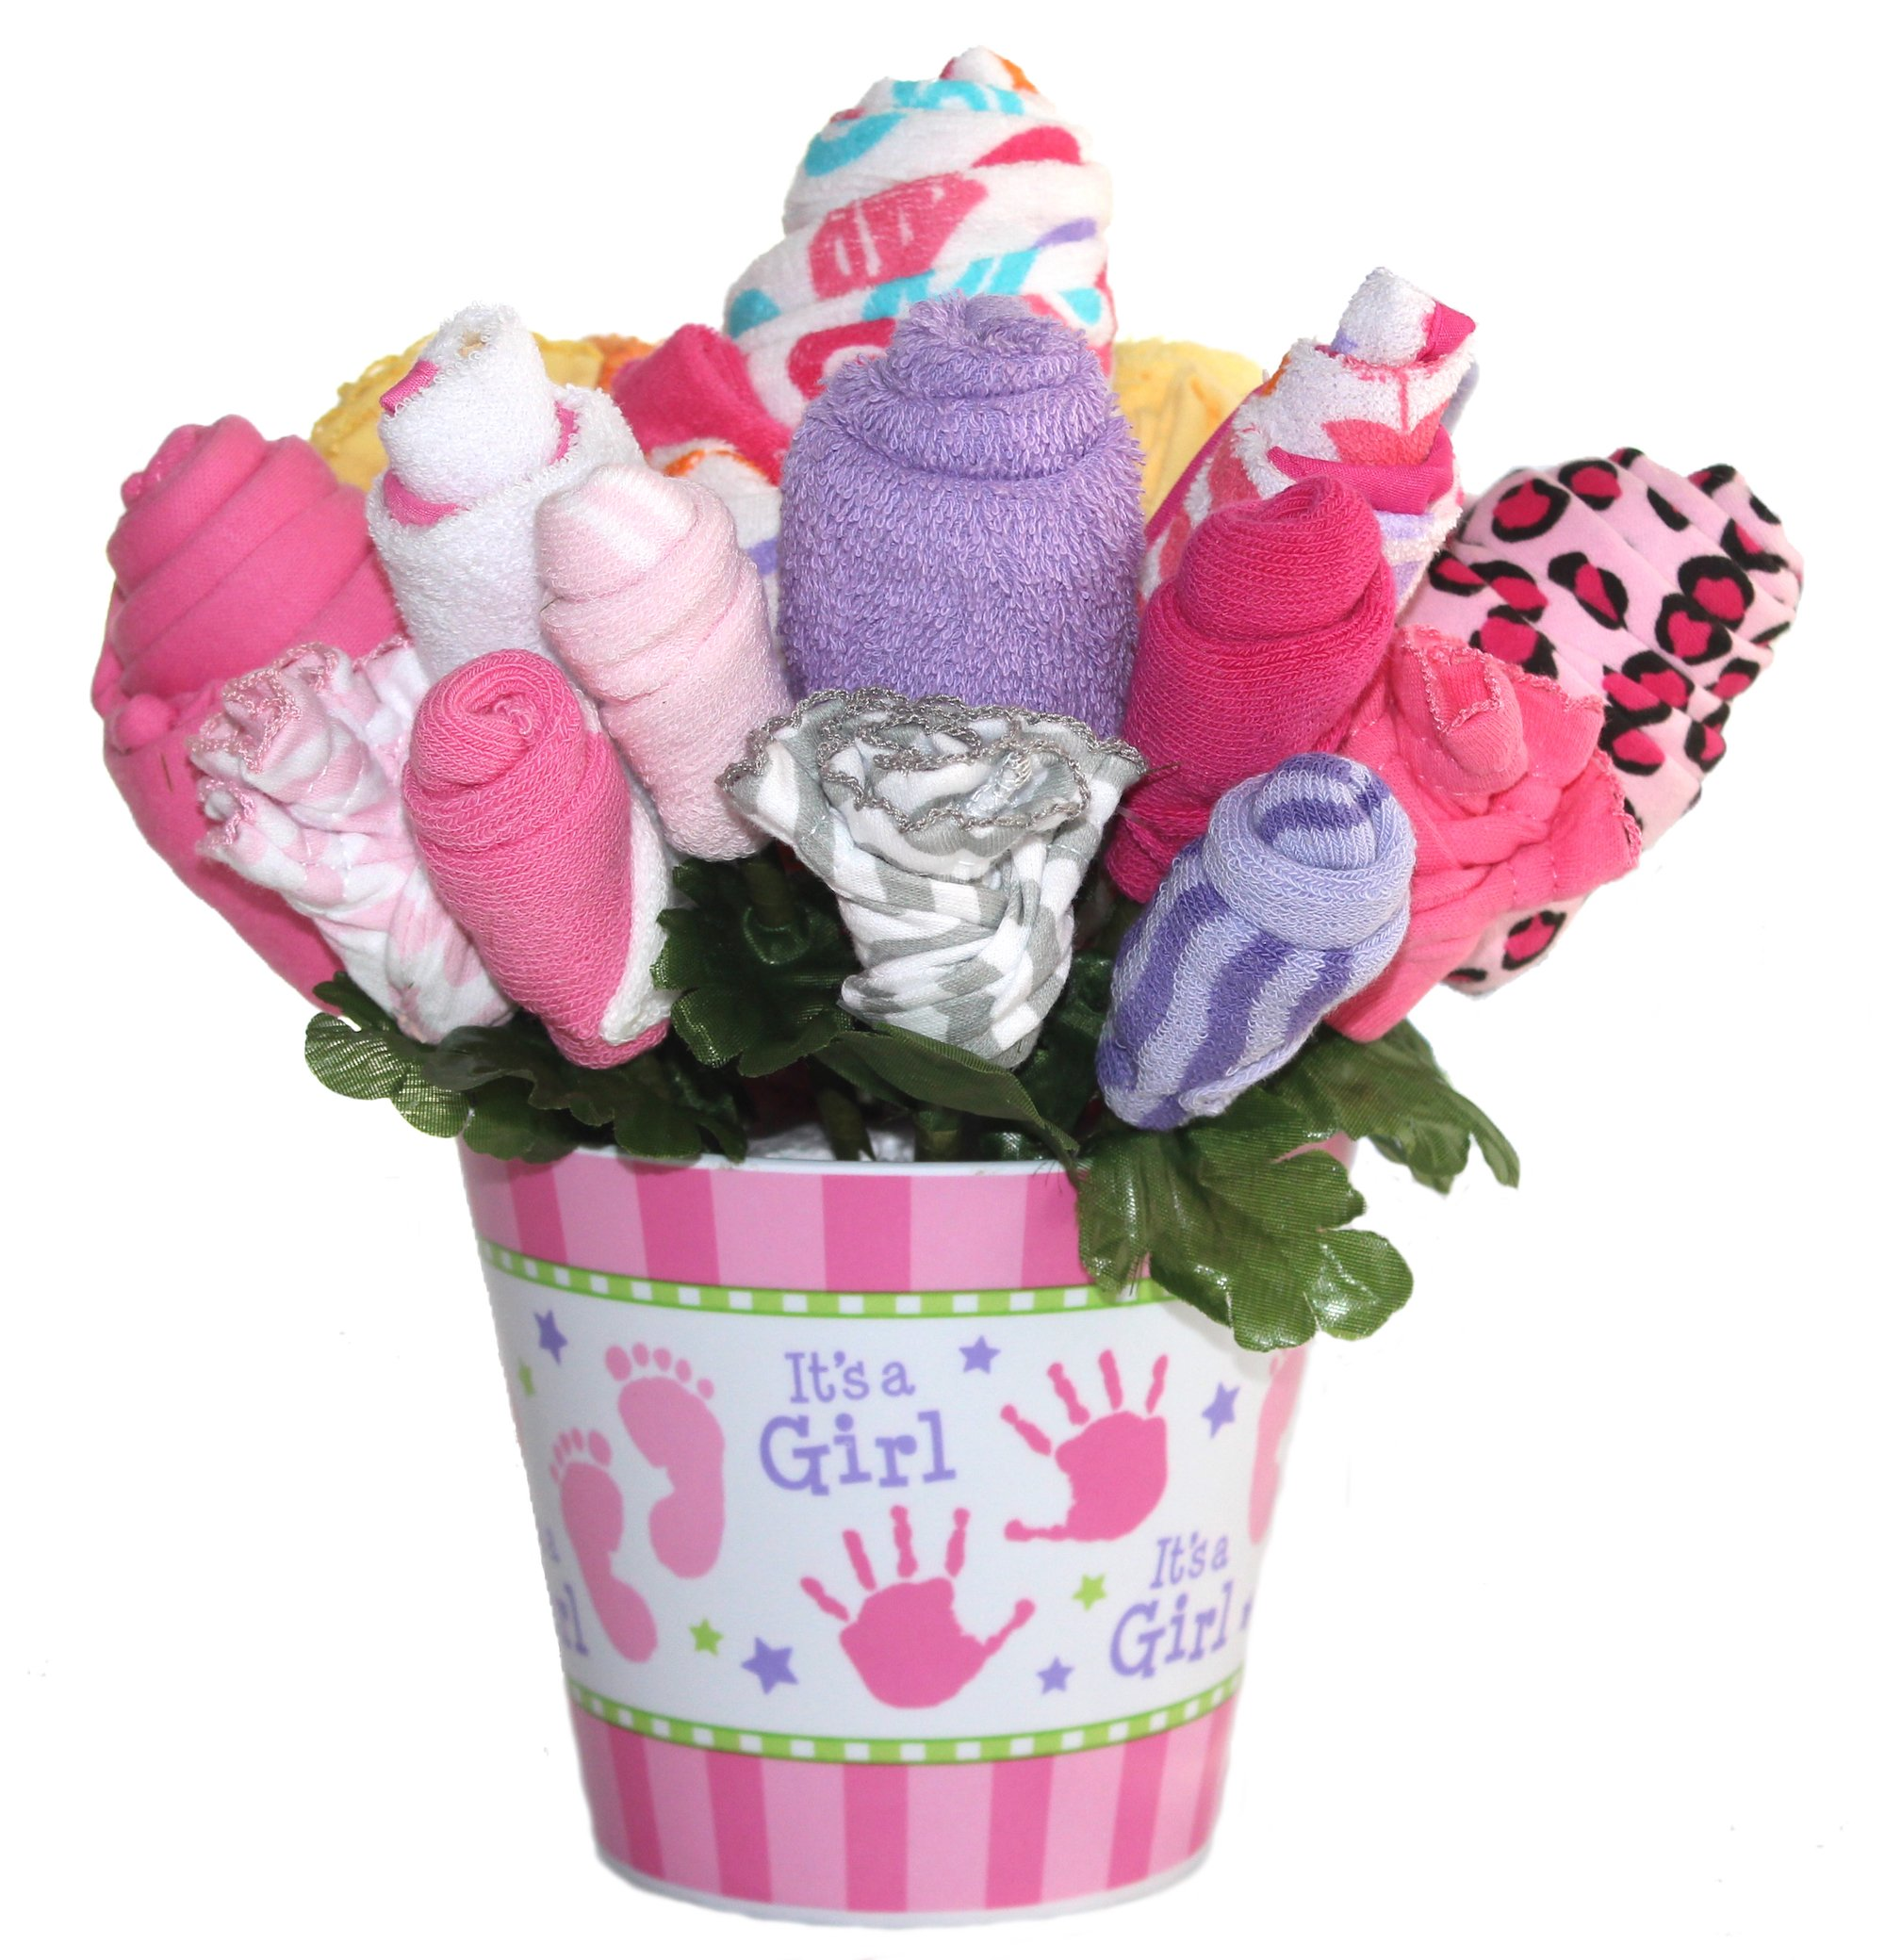 Cheap gift bouquet ideas find gift bouquet ideas deals on line at get quotations baby bouquet made with baby clothes and accessories baby shower gift practical newborn gift izmirmasajfo